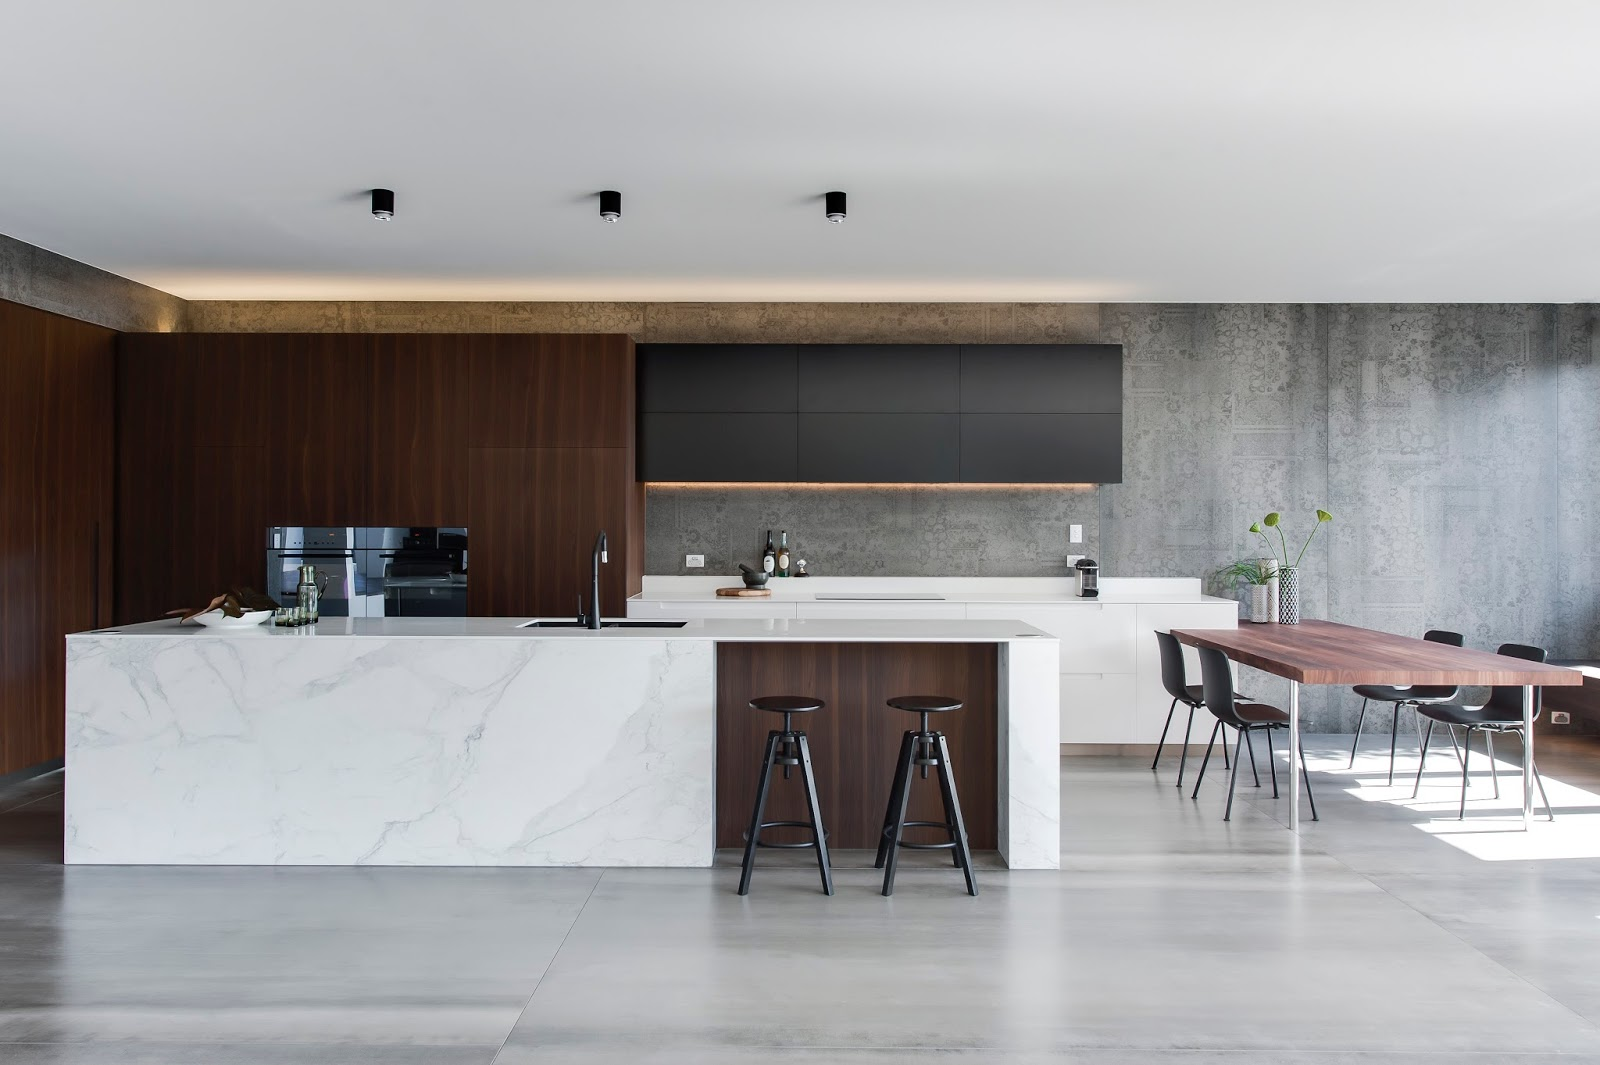 Minosa Hia Nsw Kitchen Bathroom Awards 2015 Minosa